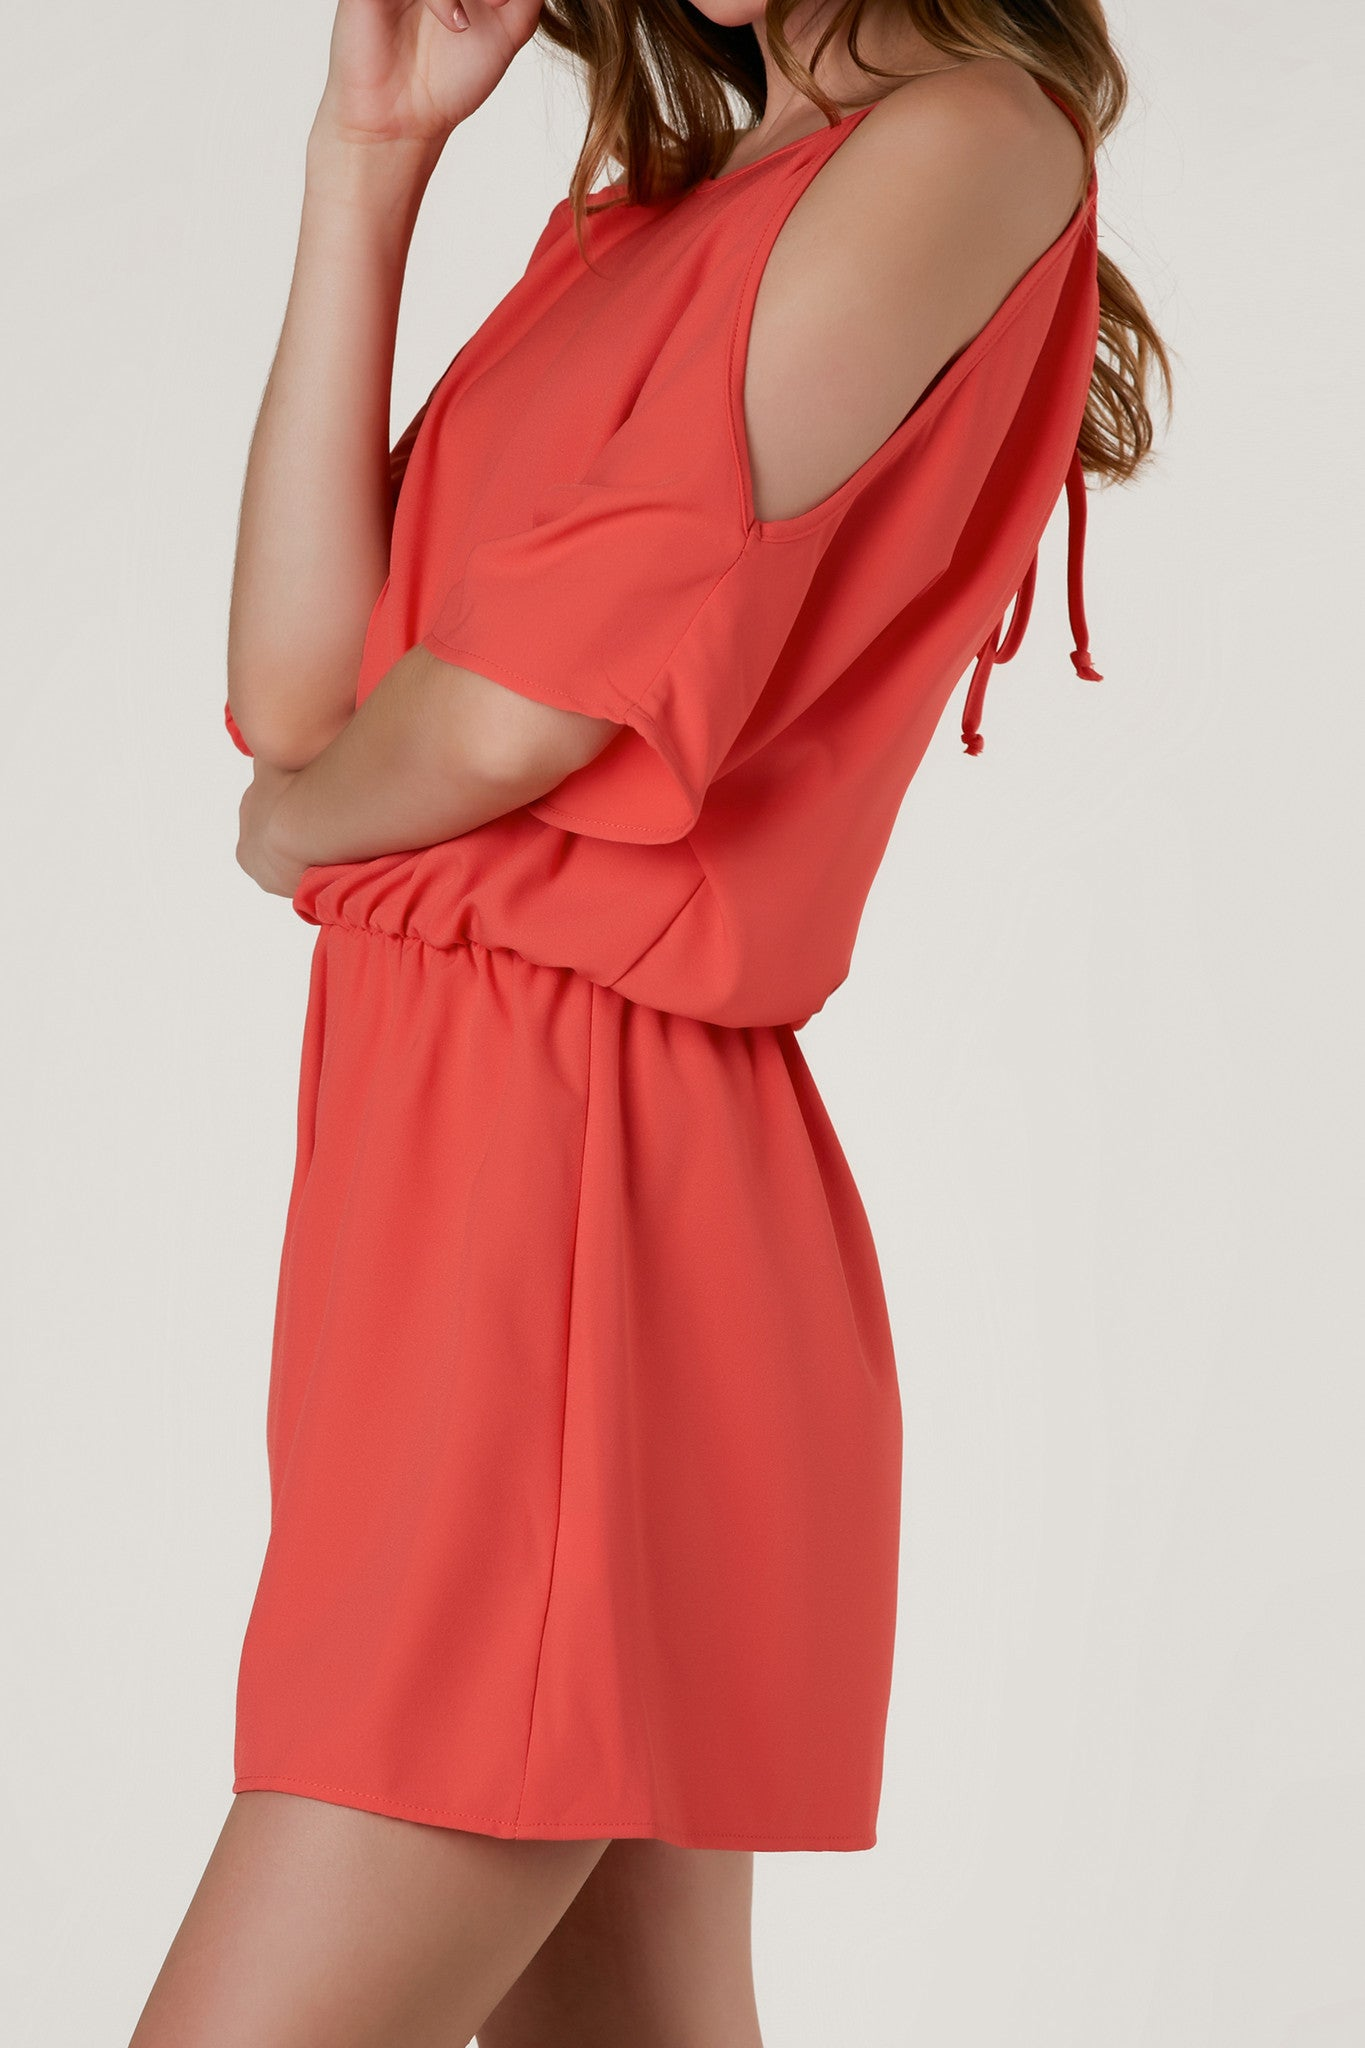 Loose fit cold shoulder romper with cinched waist and cut out detailing in back.